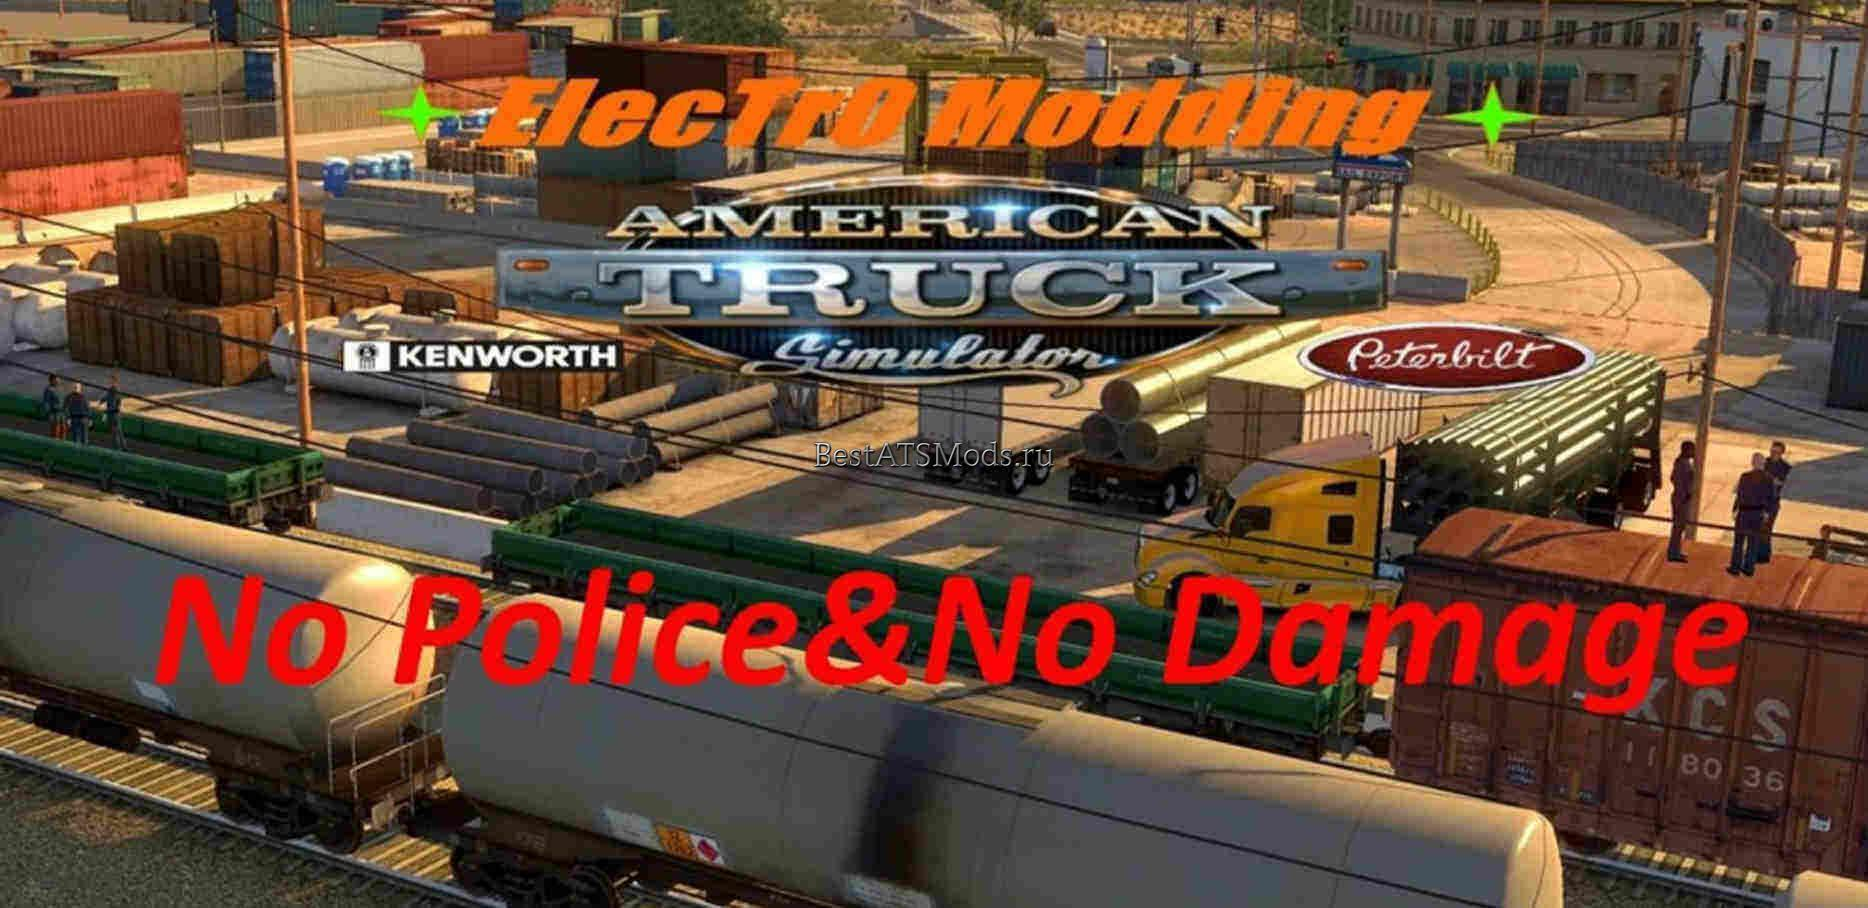 rsz_Мод_нет_полиции_и_повреждений_no_police__no_damage_by_electr0_modding_mod_american_truck_simulator